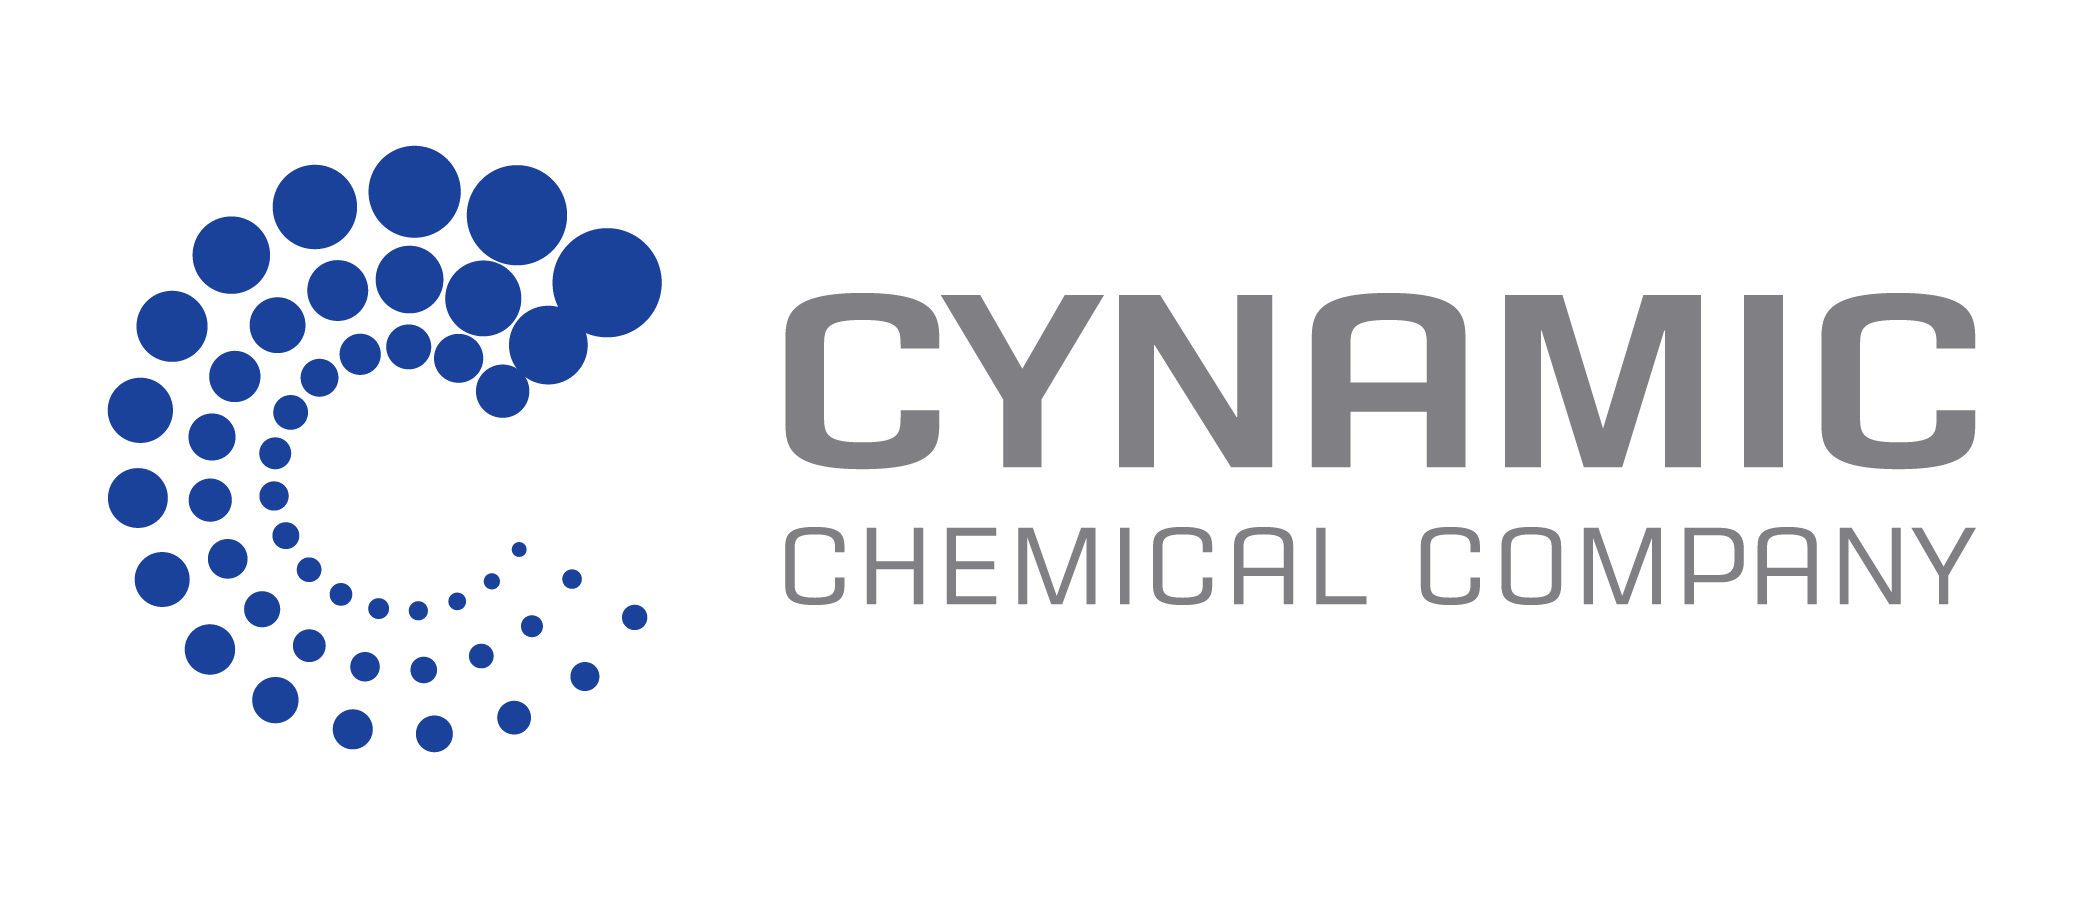 Cynamic Chemical